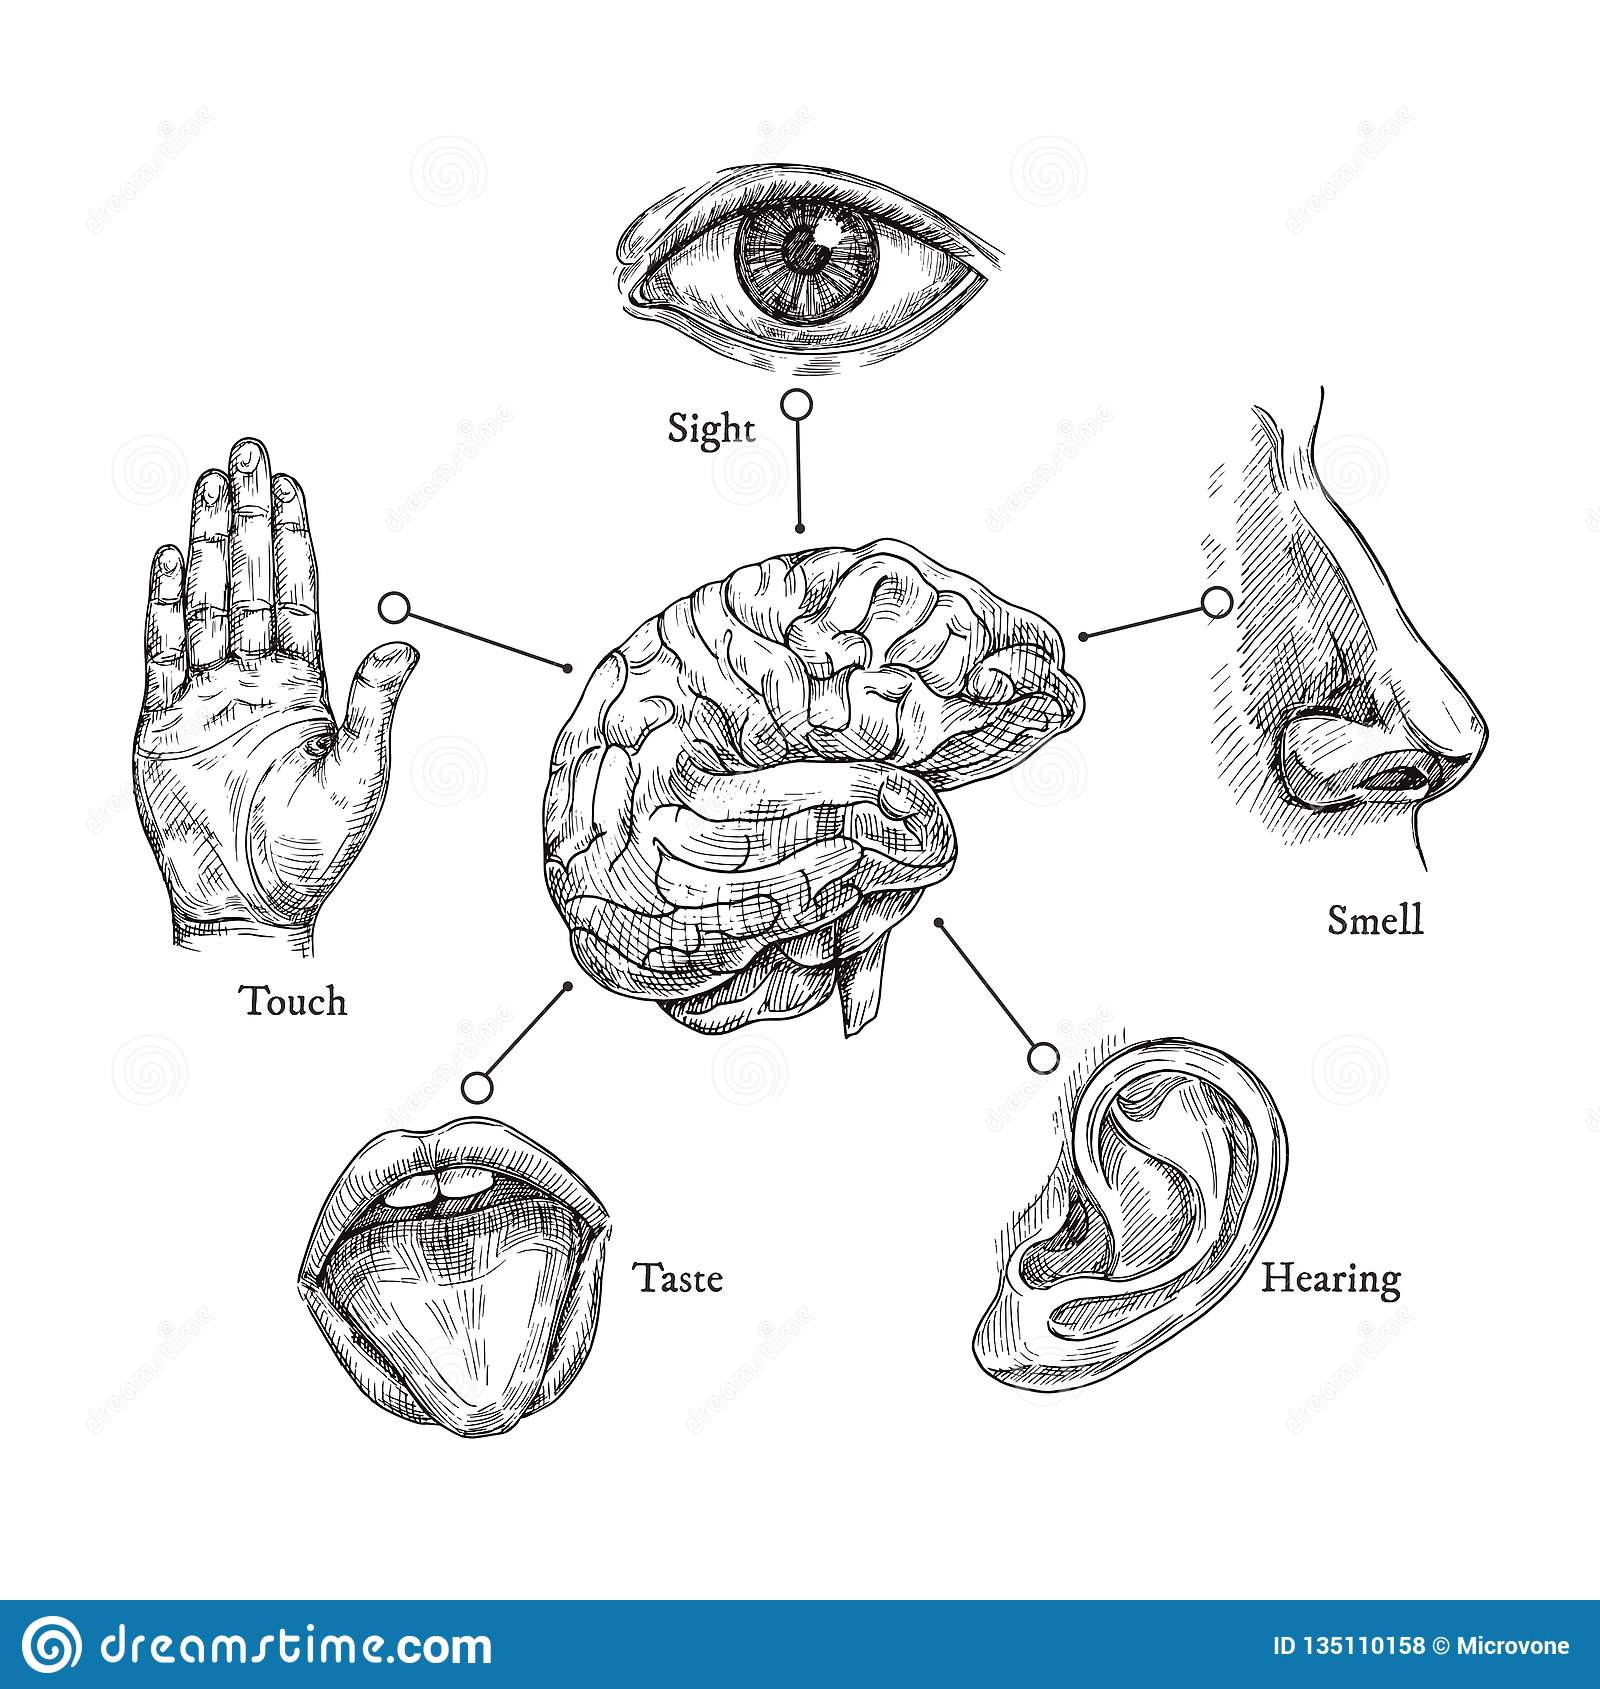 hight resolution of sketch mouth and eye nose and ear hand and brain